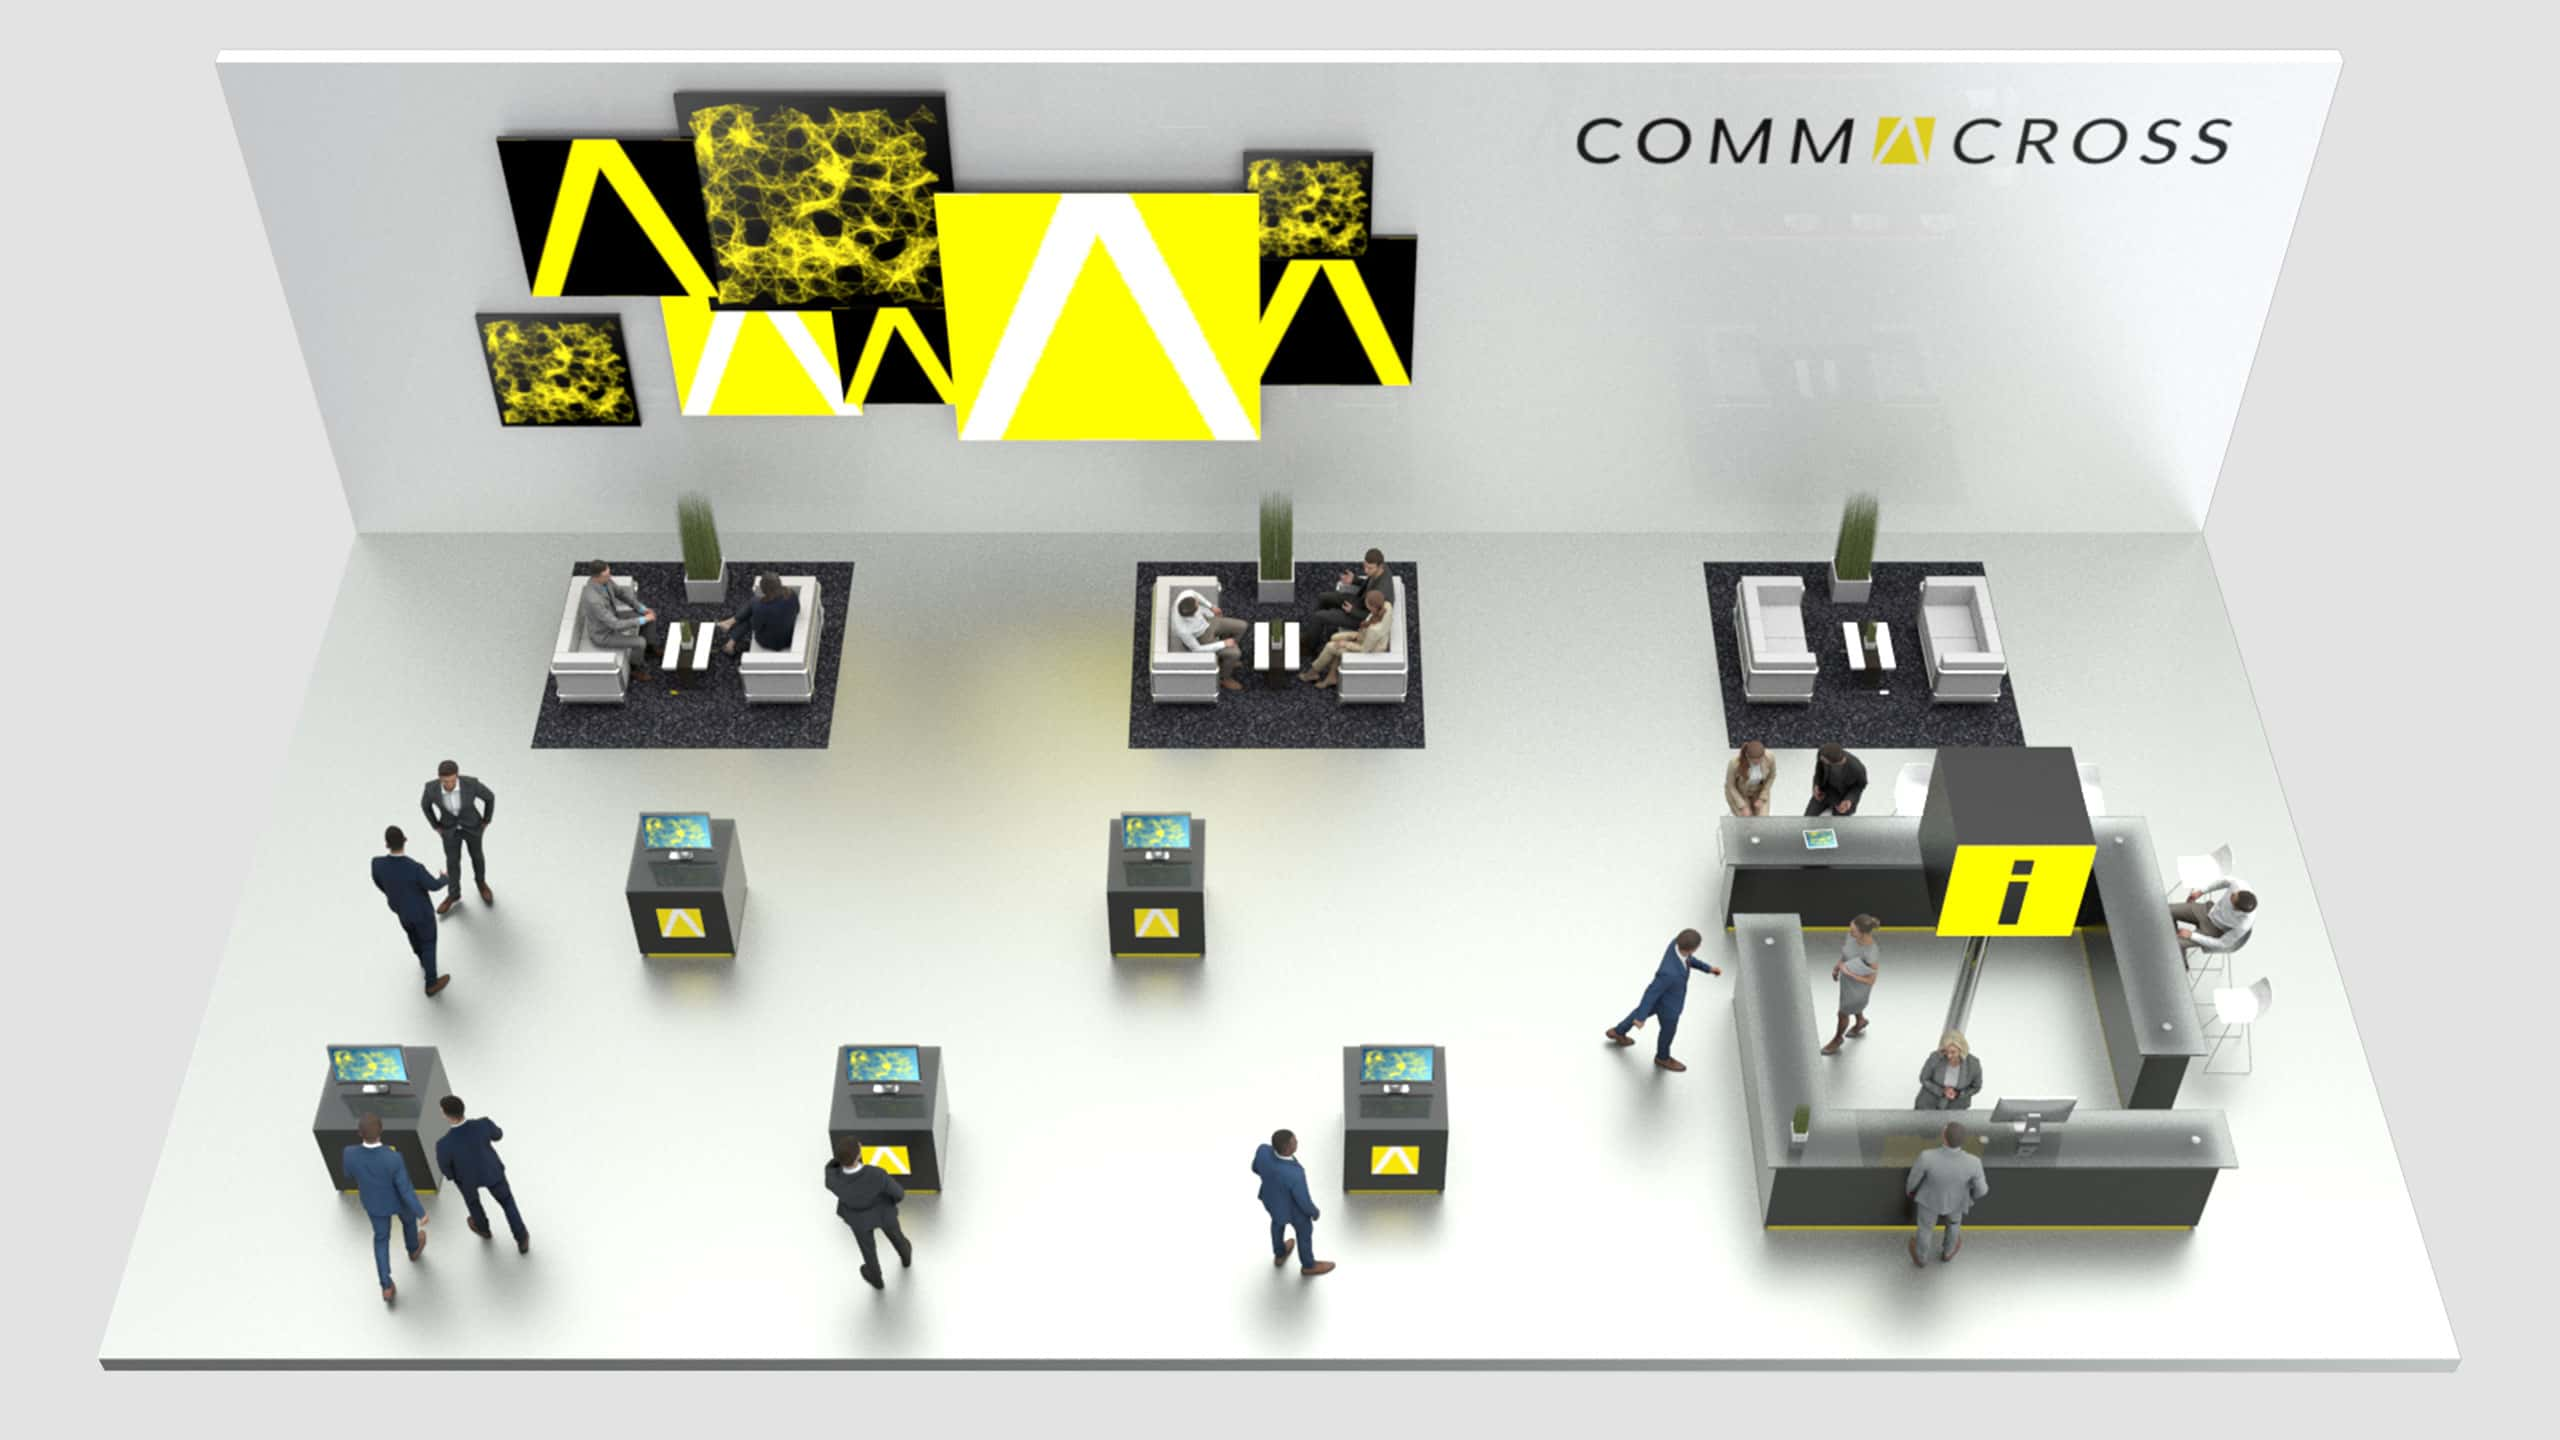 commacross-commacross virtueller Messestand g6 min